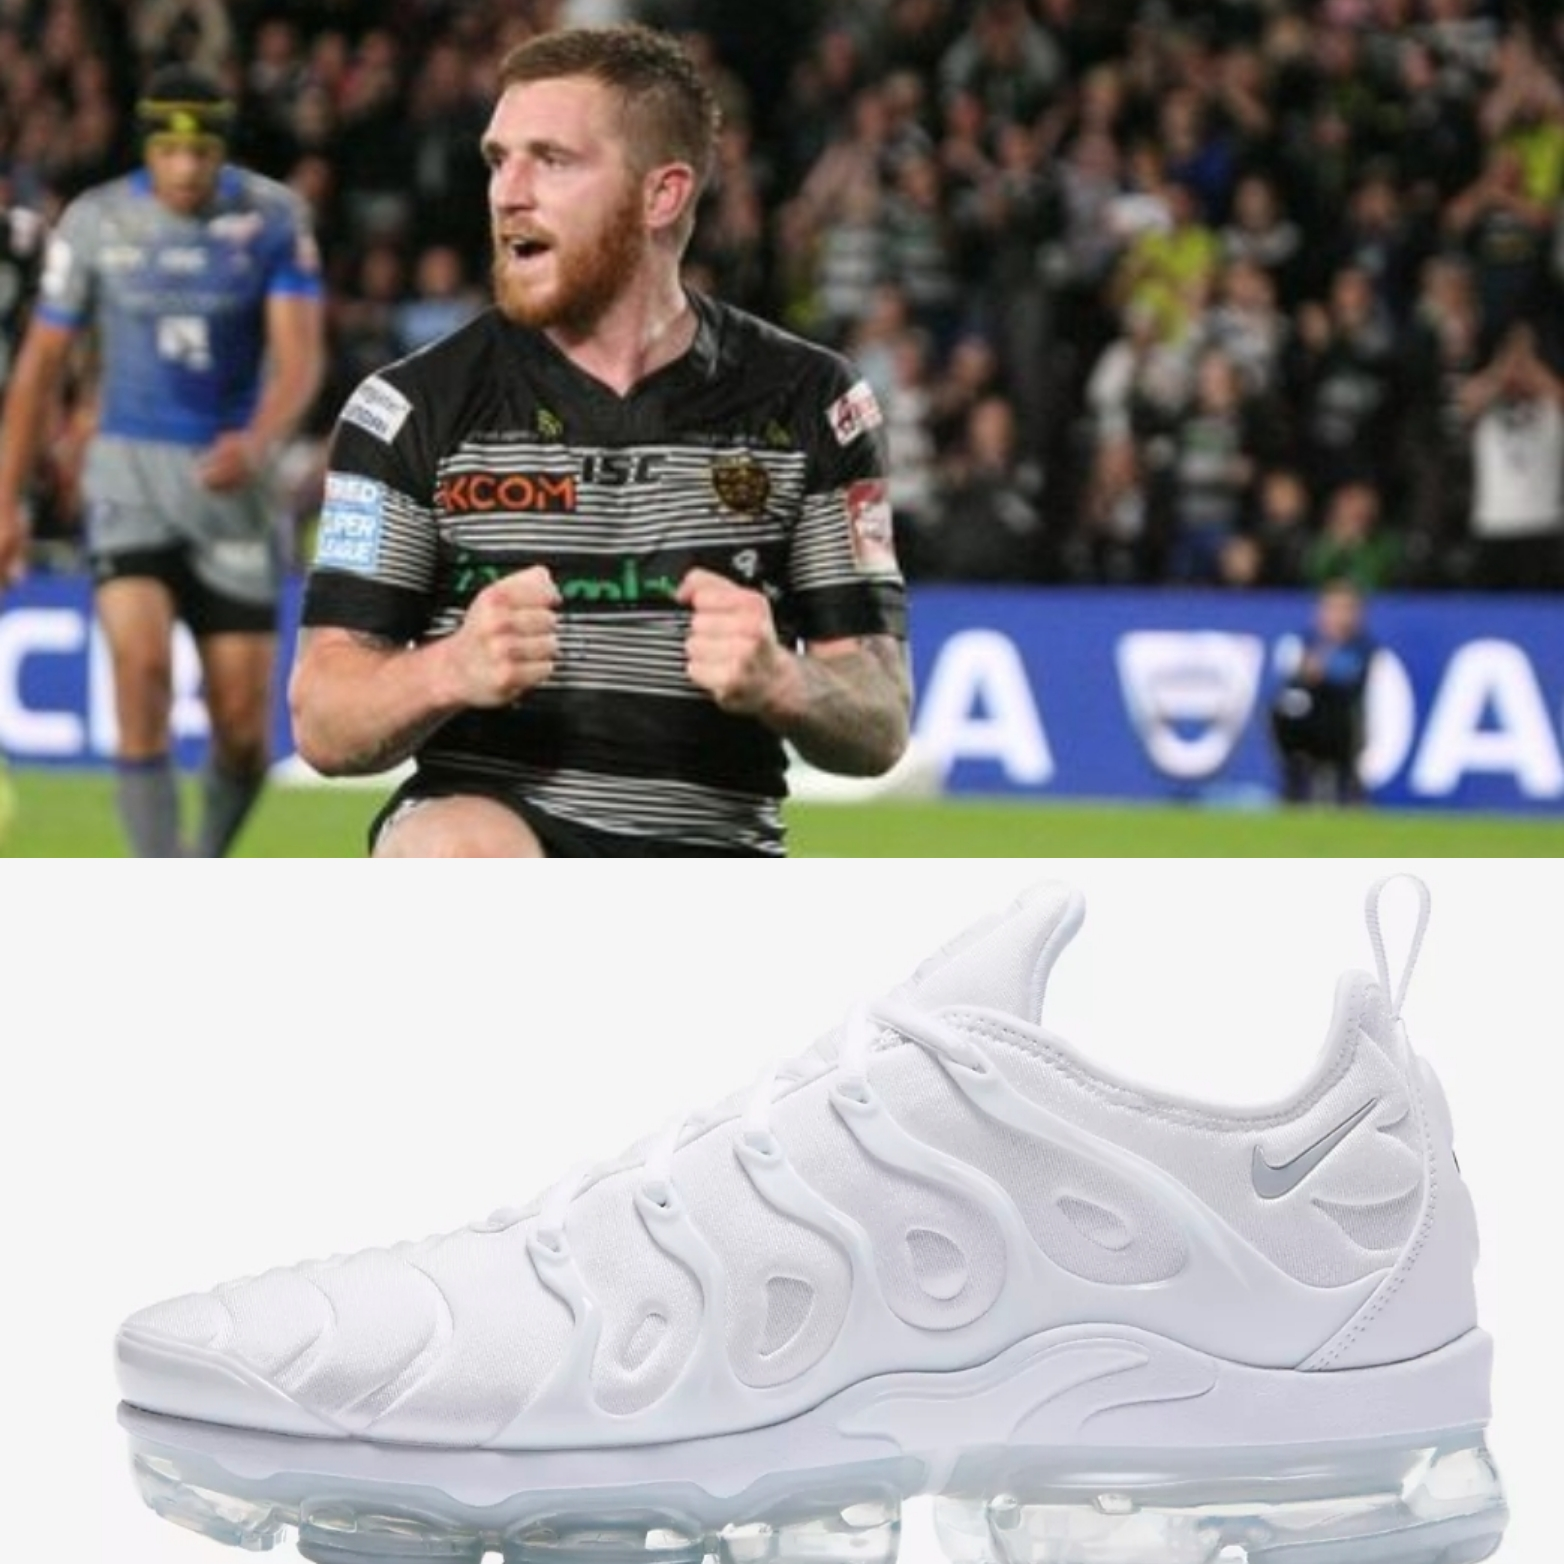 He's an Ice Cold assassin in high-pressure situations, but what do you think of Sneyd's Icy white VaporMax trainers?